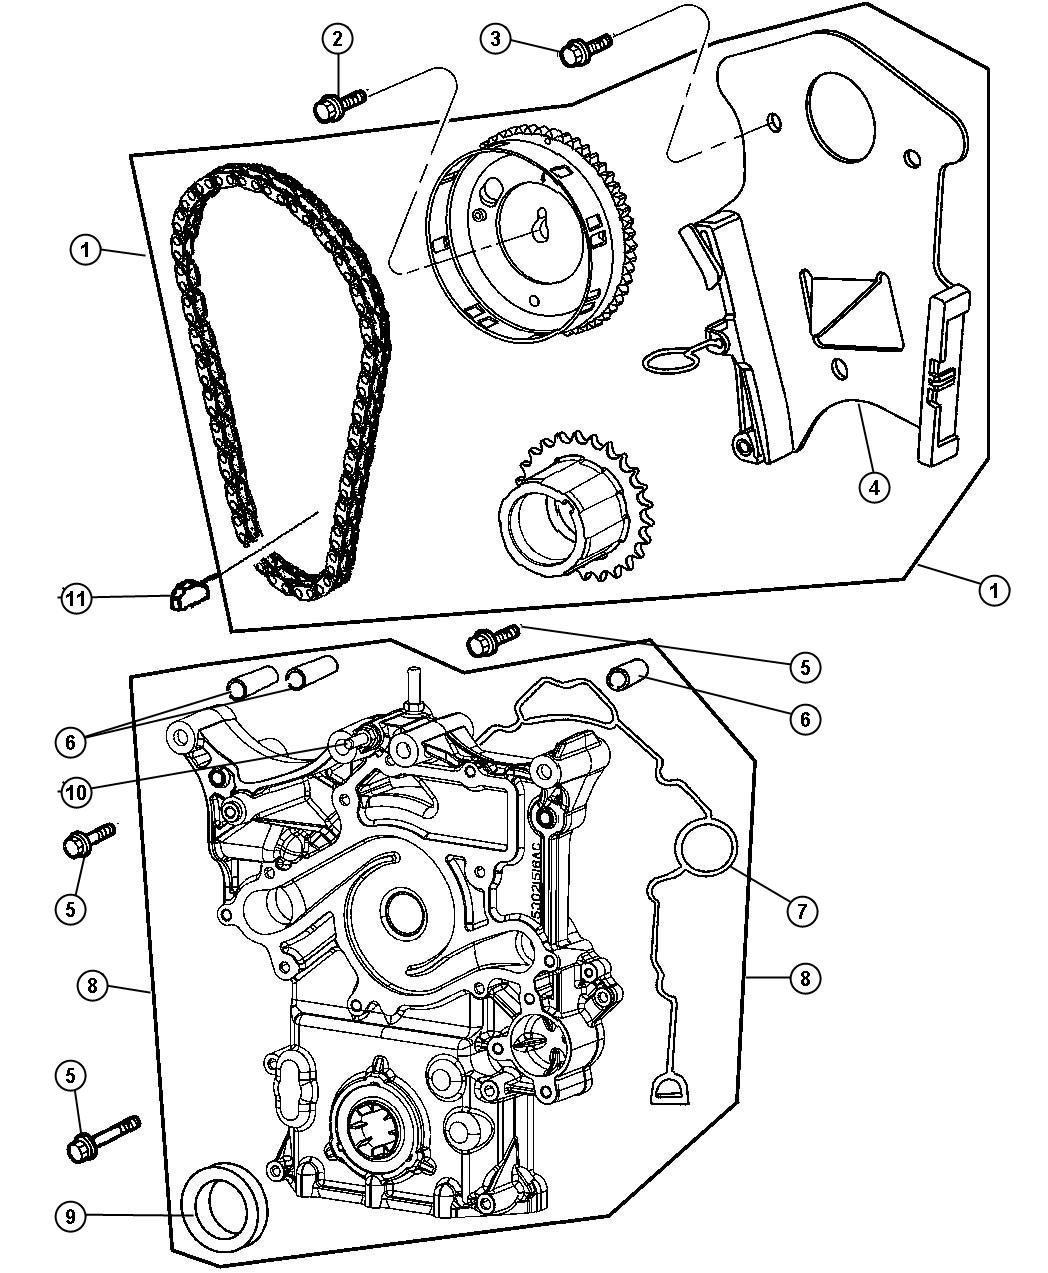 Jeep Commander Timing Chain And Related Parts 5 7l 5 7l Hemi Multi Displacement Engine